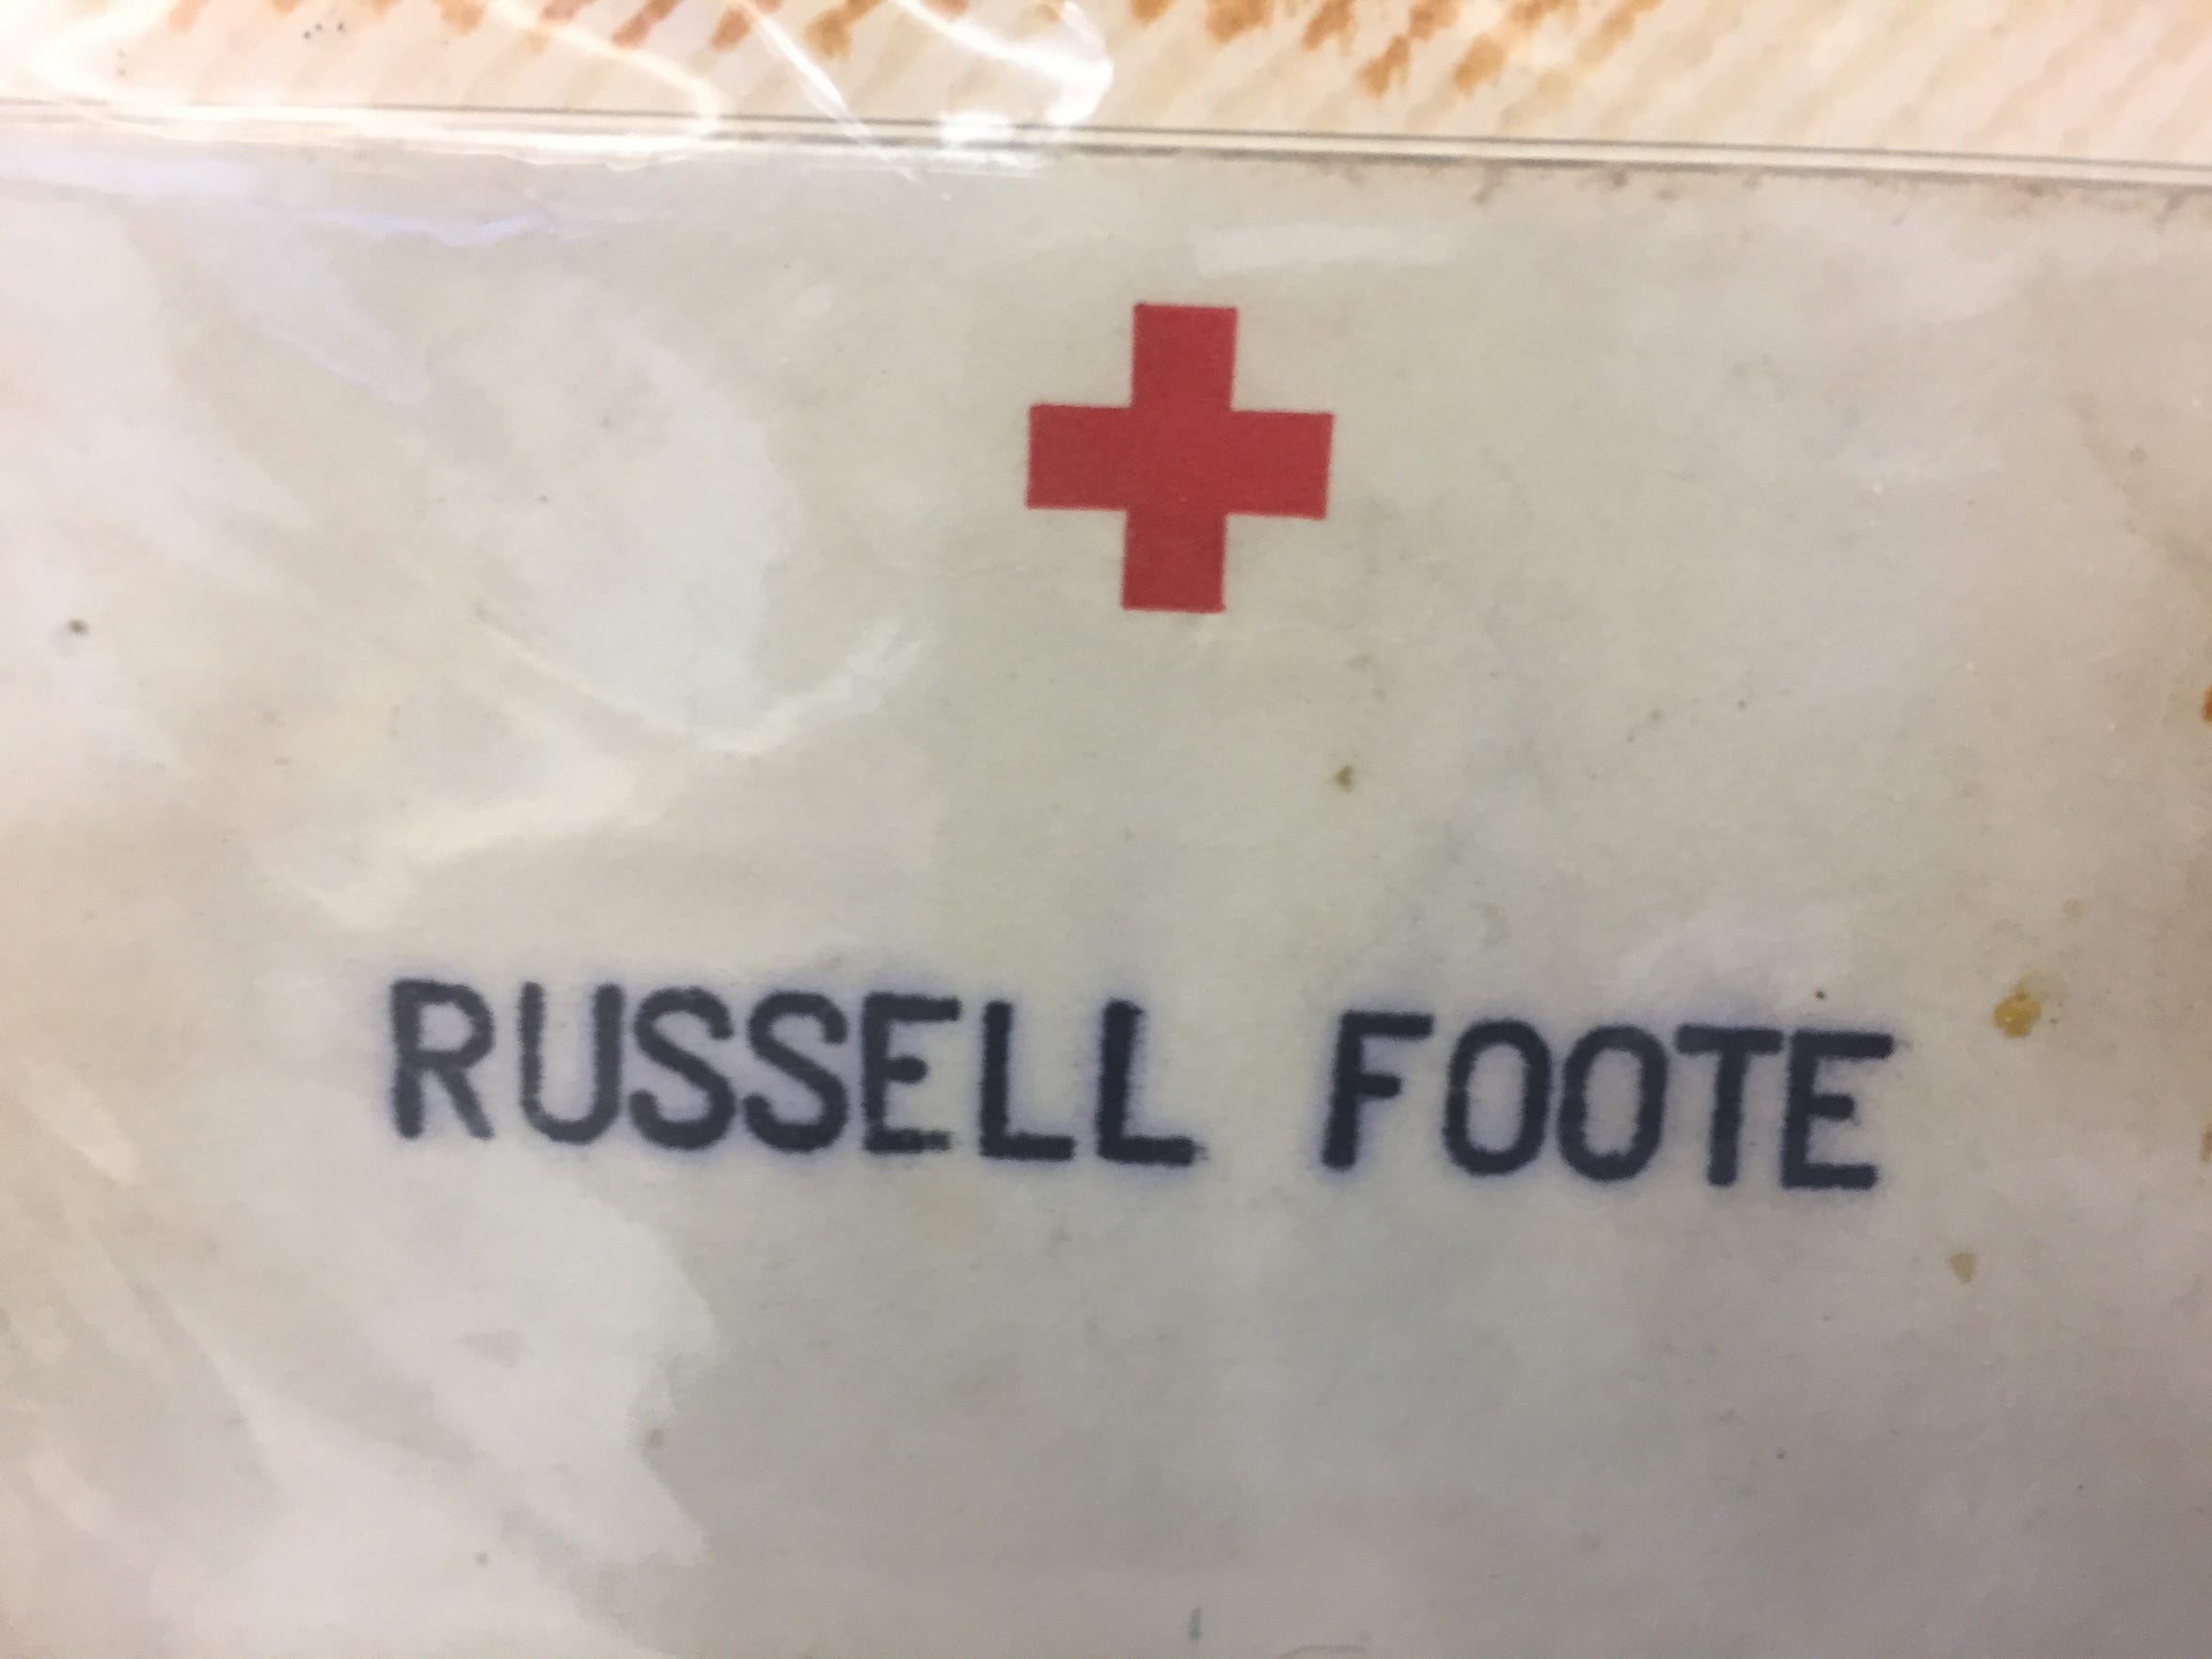 Russell Foote's Red Cross name tag.